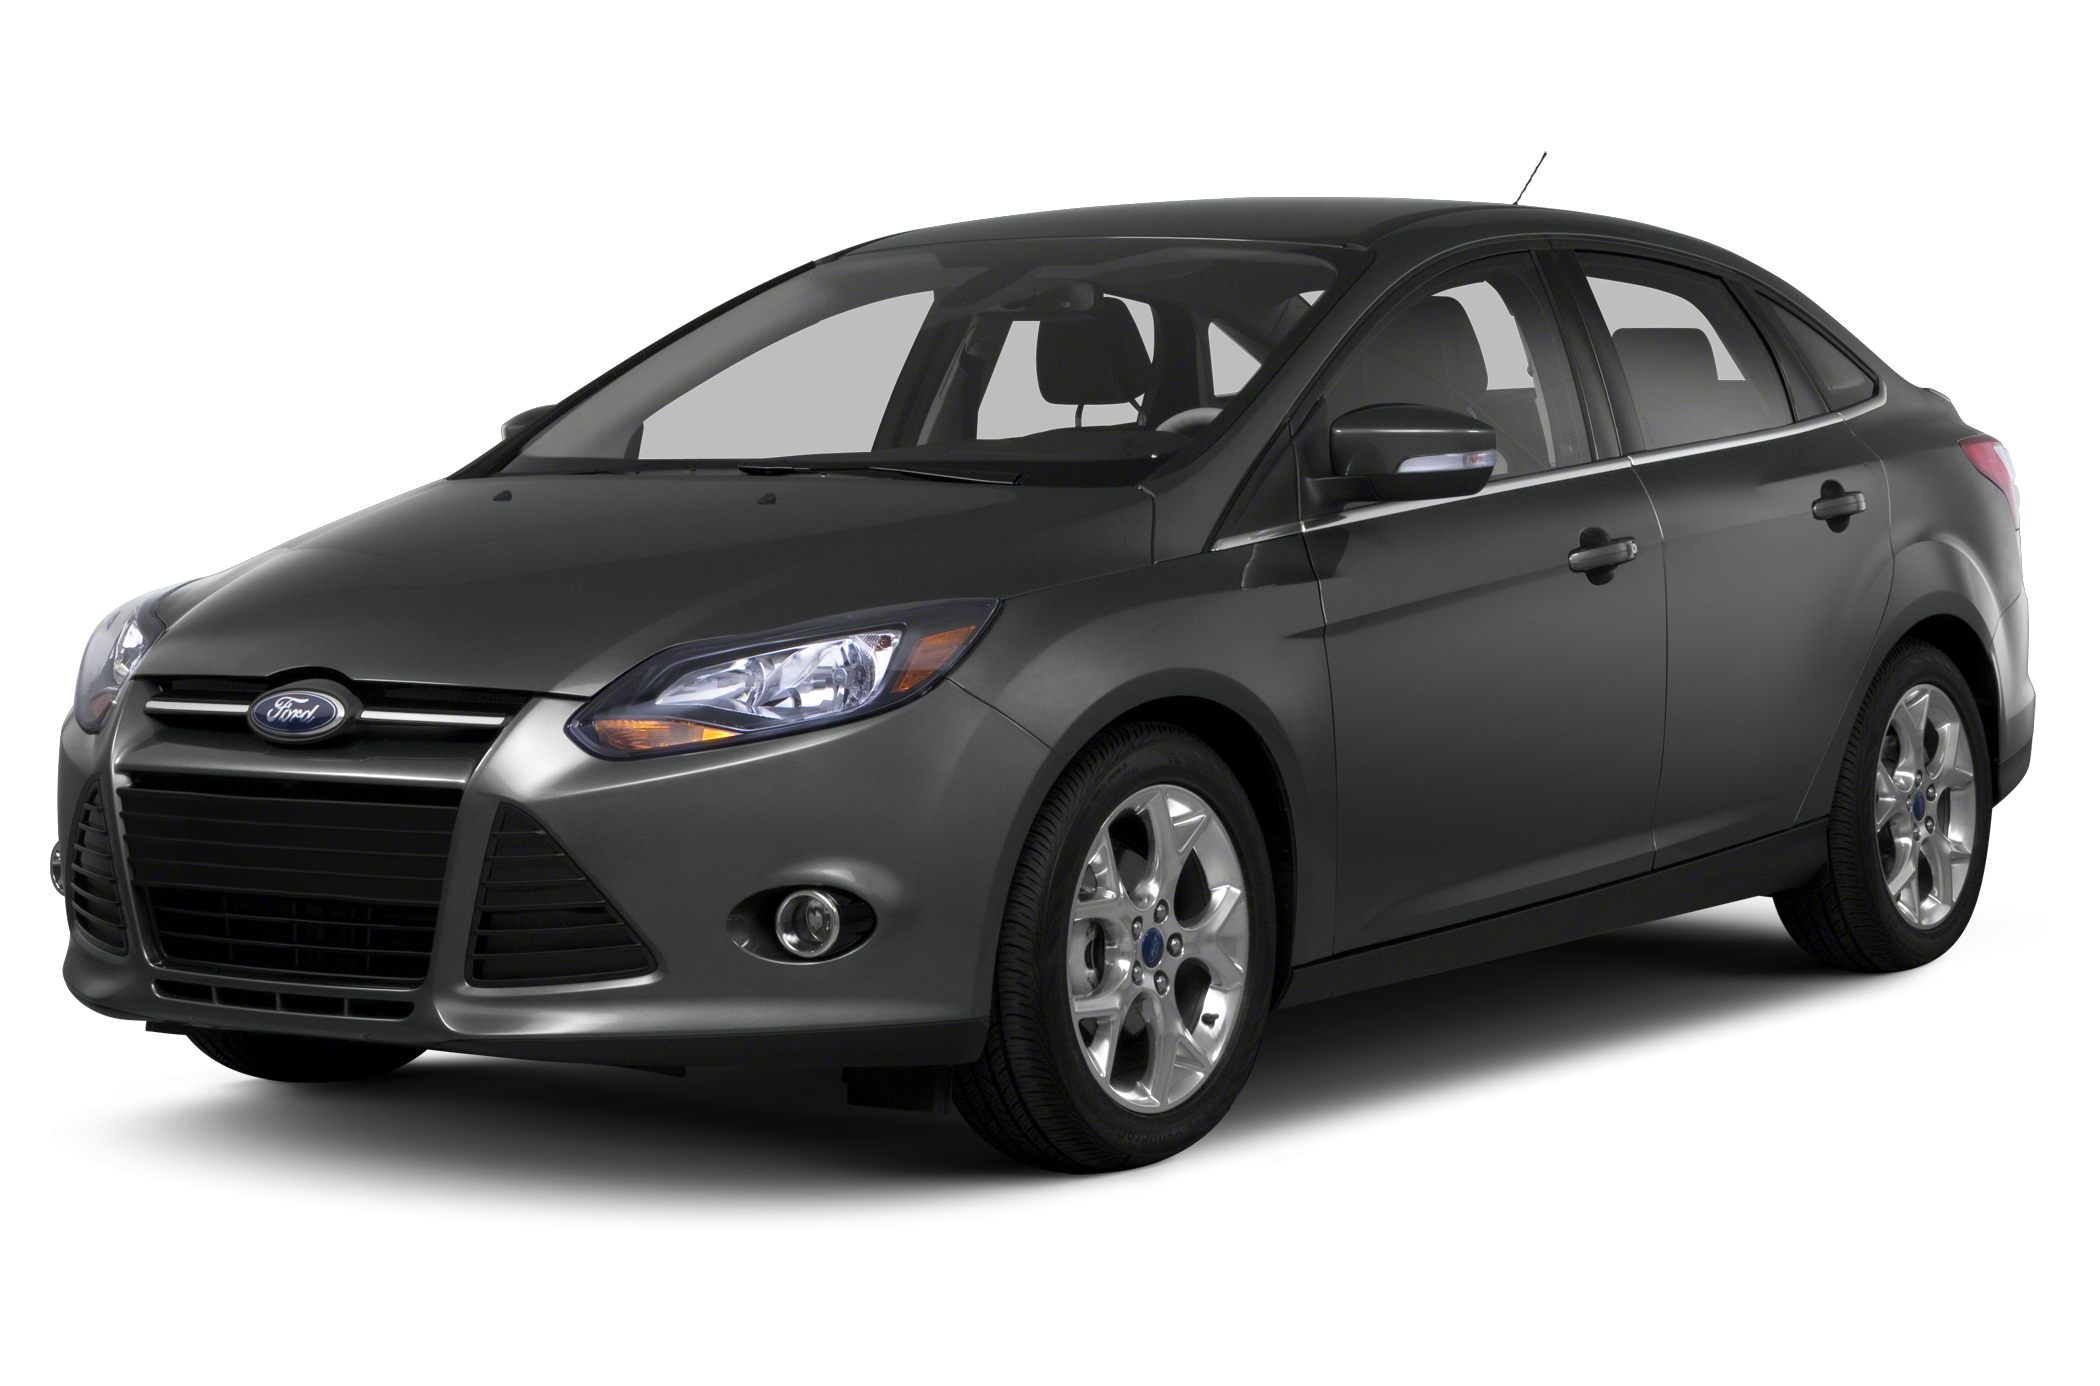 2013 Ford Focus SE Hatchback for sale in Wilson for $12,983 with 49,053 miles.